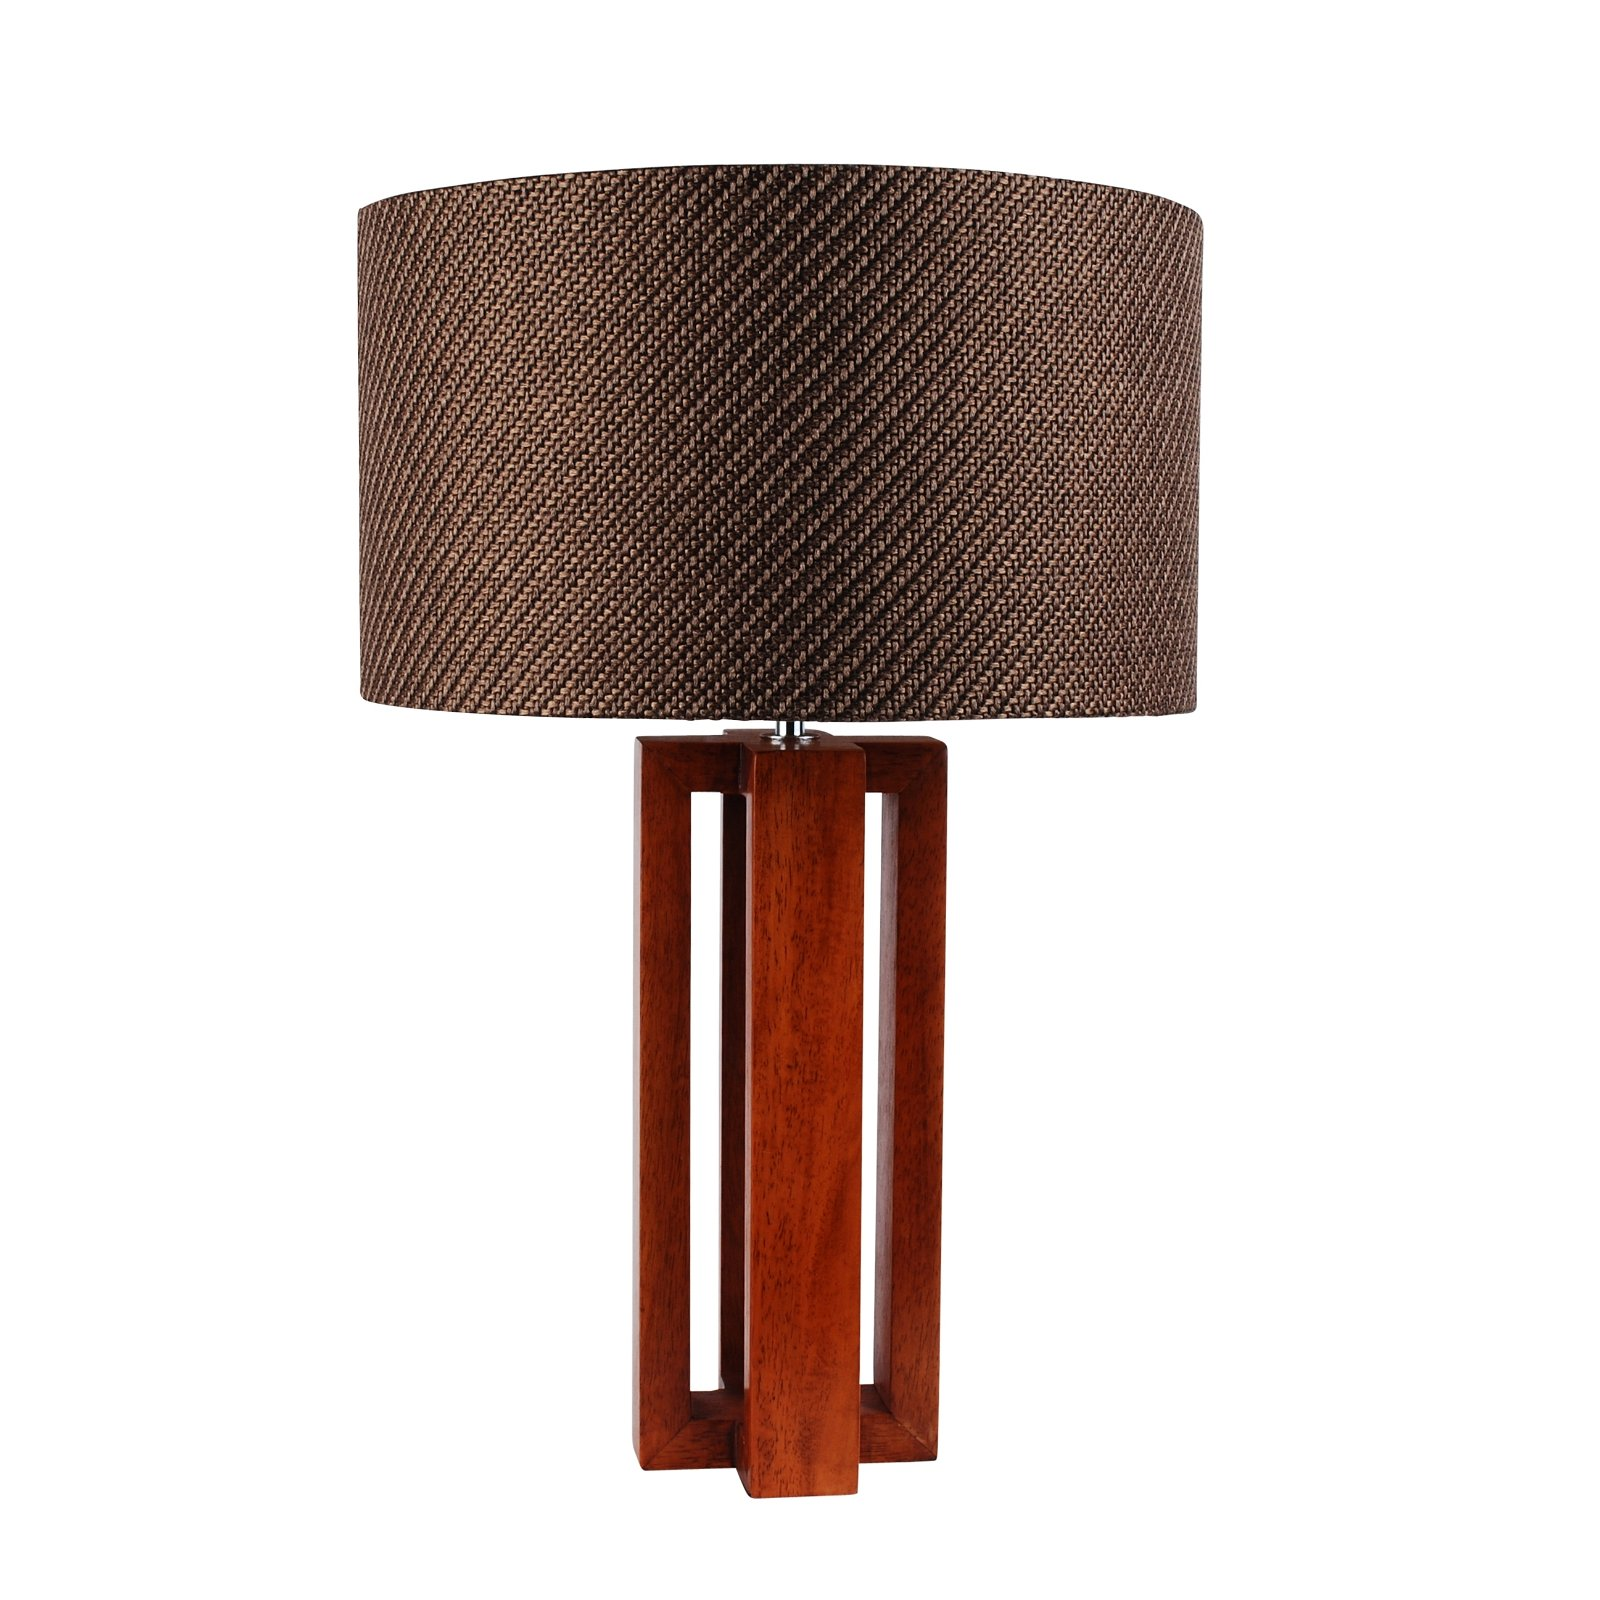 Modern Cherrywood And Chrome Table Lamp Bedside Light W Woven Taupe Fabric Shade Ebay